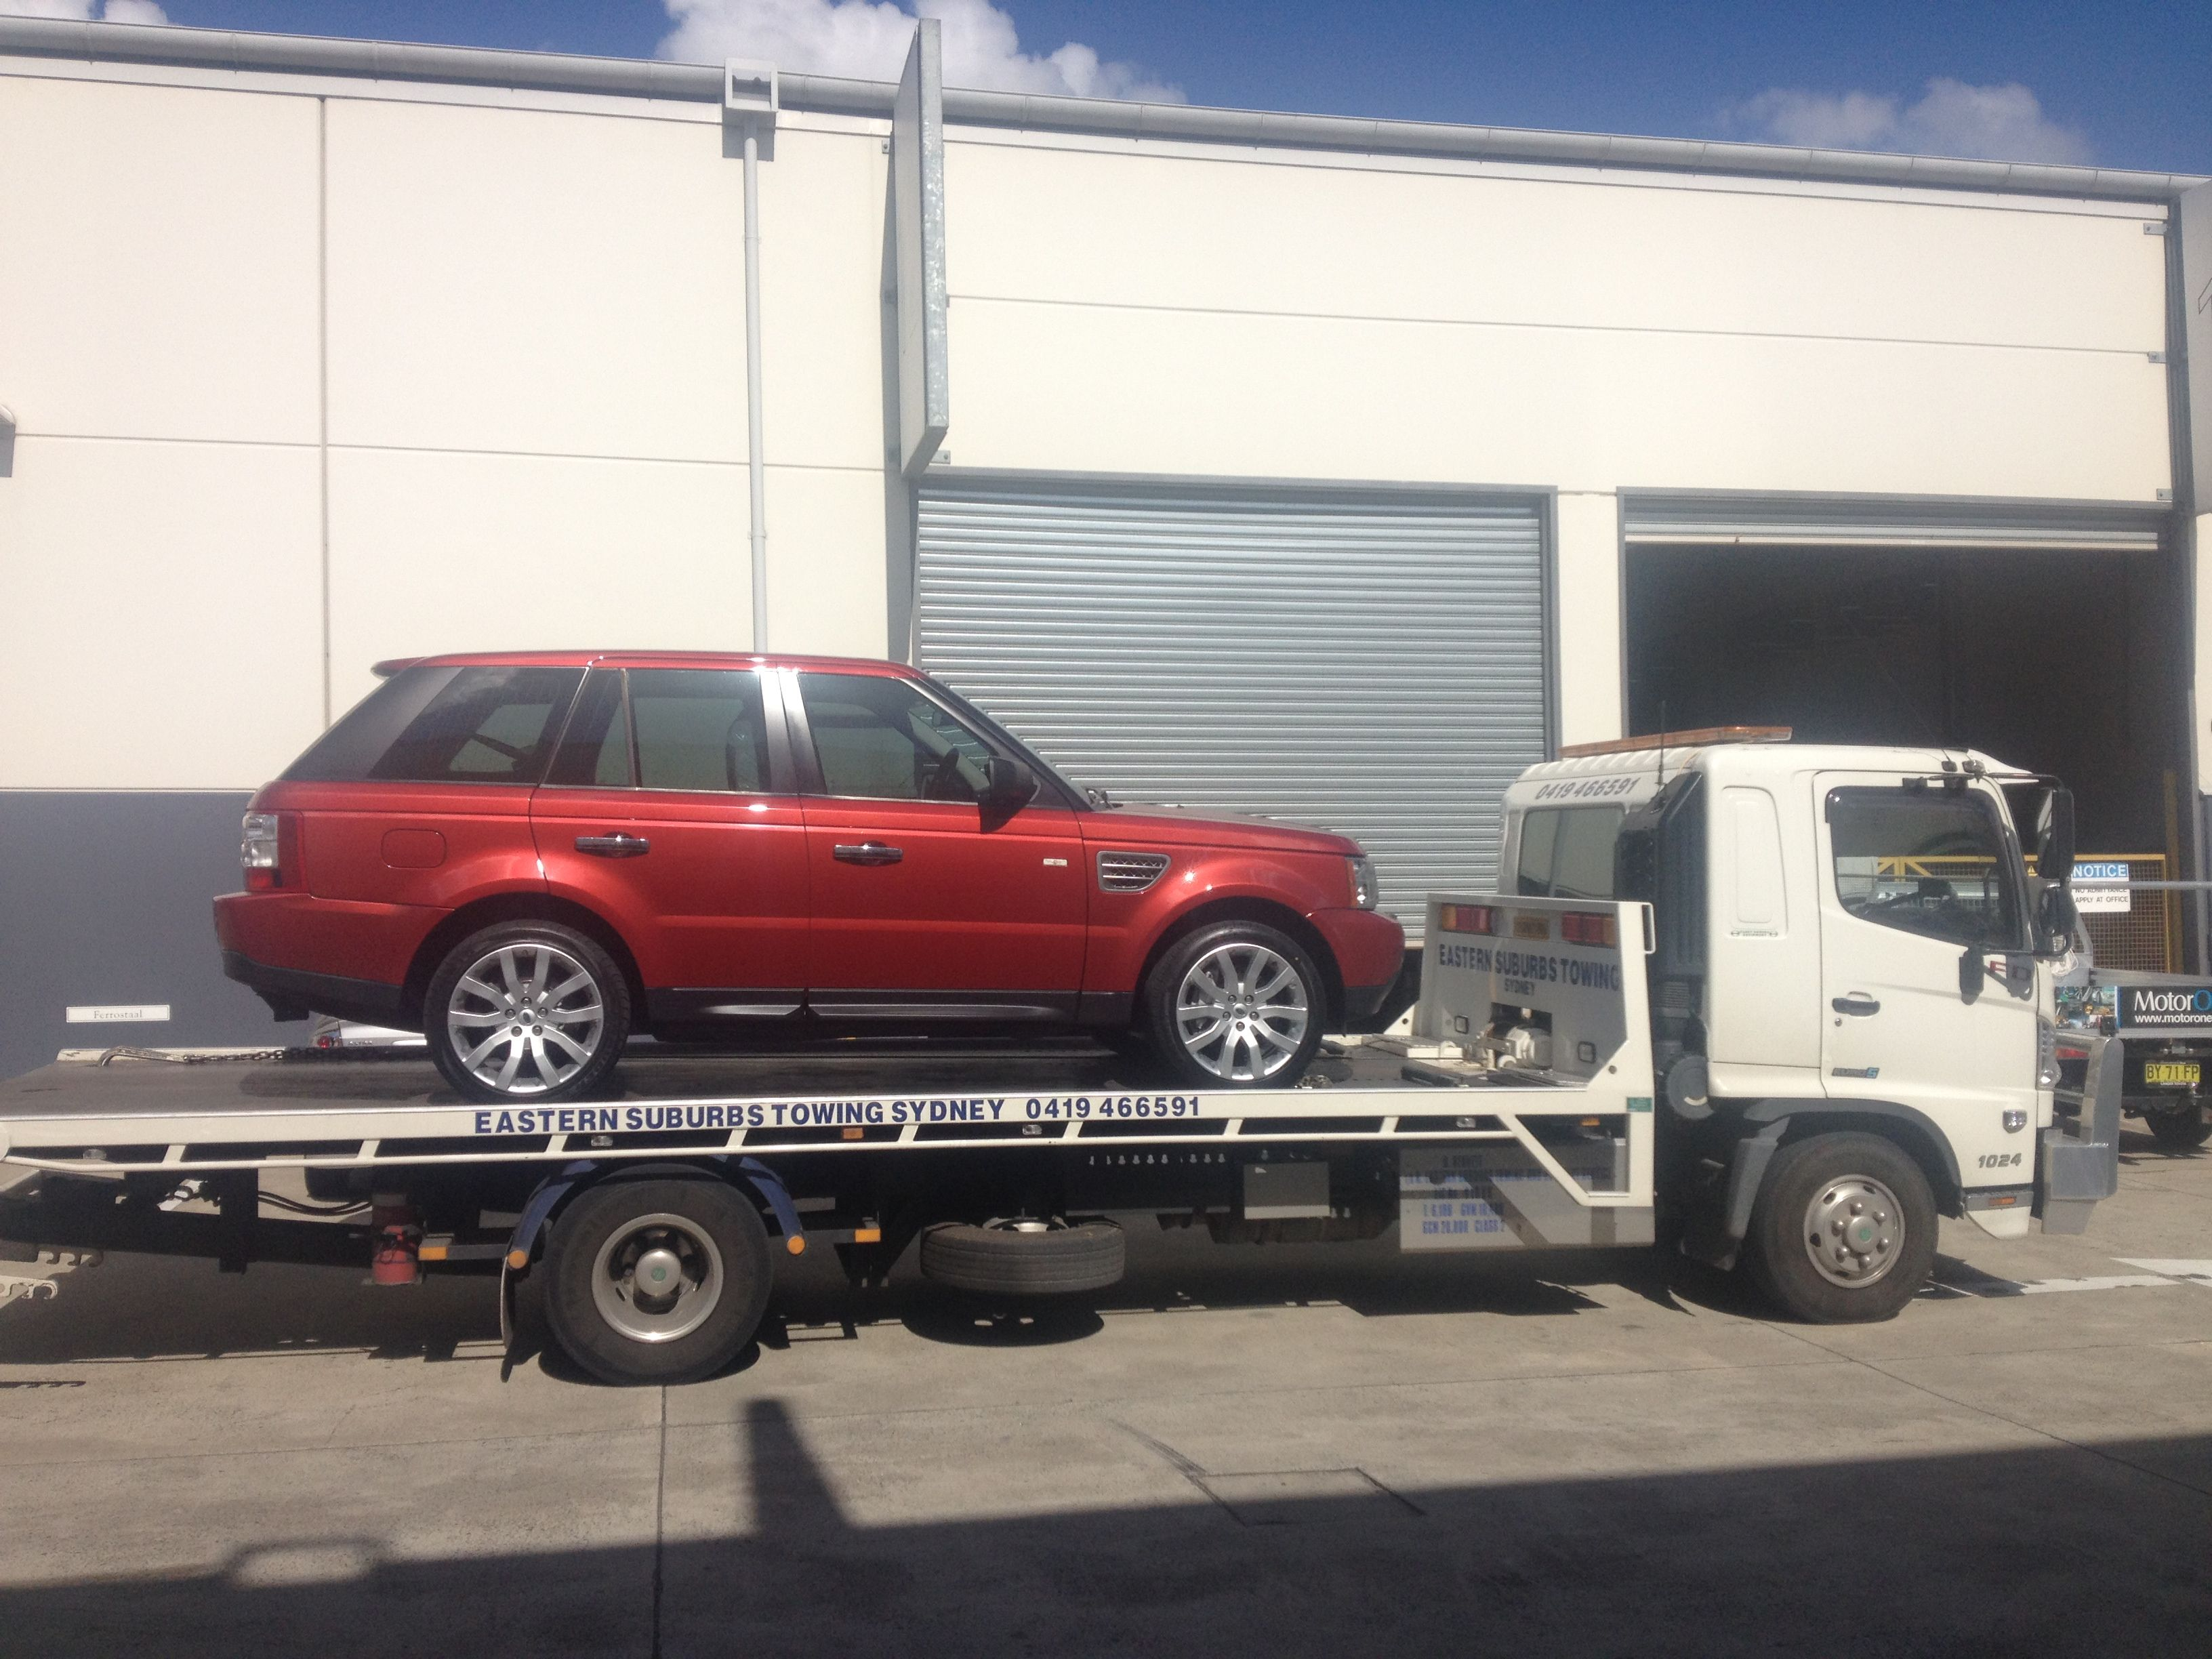 Towing a Range Rover from Rosebery to Silverwater for Stratton